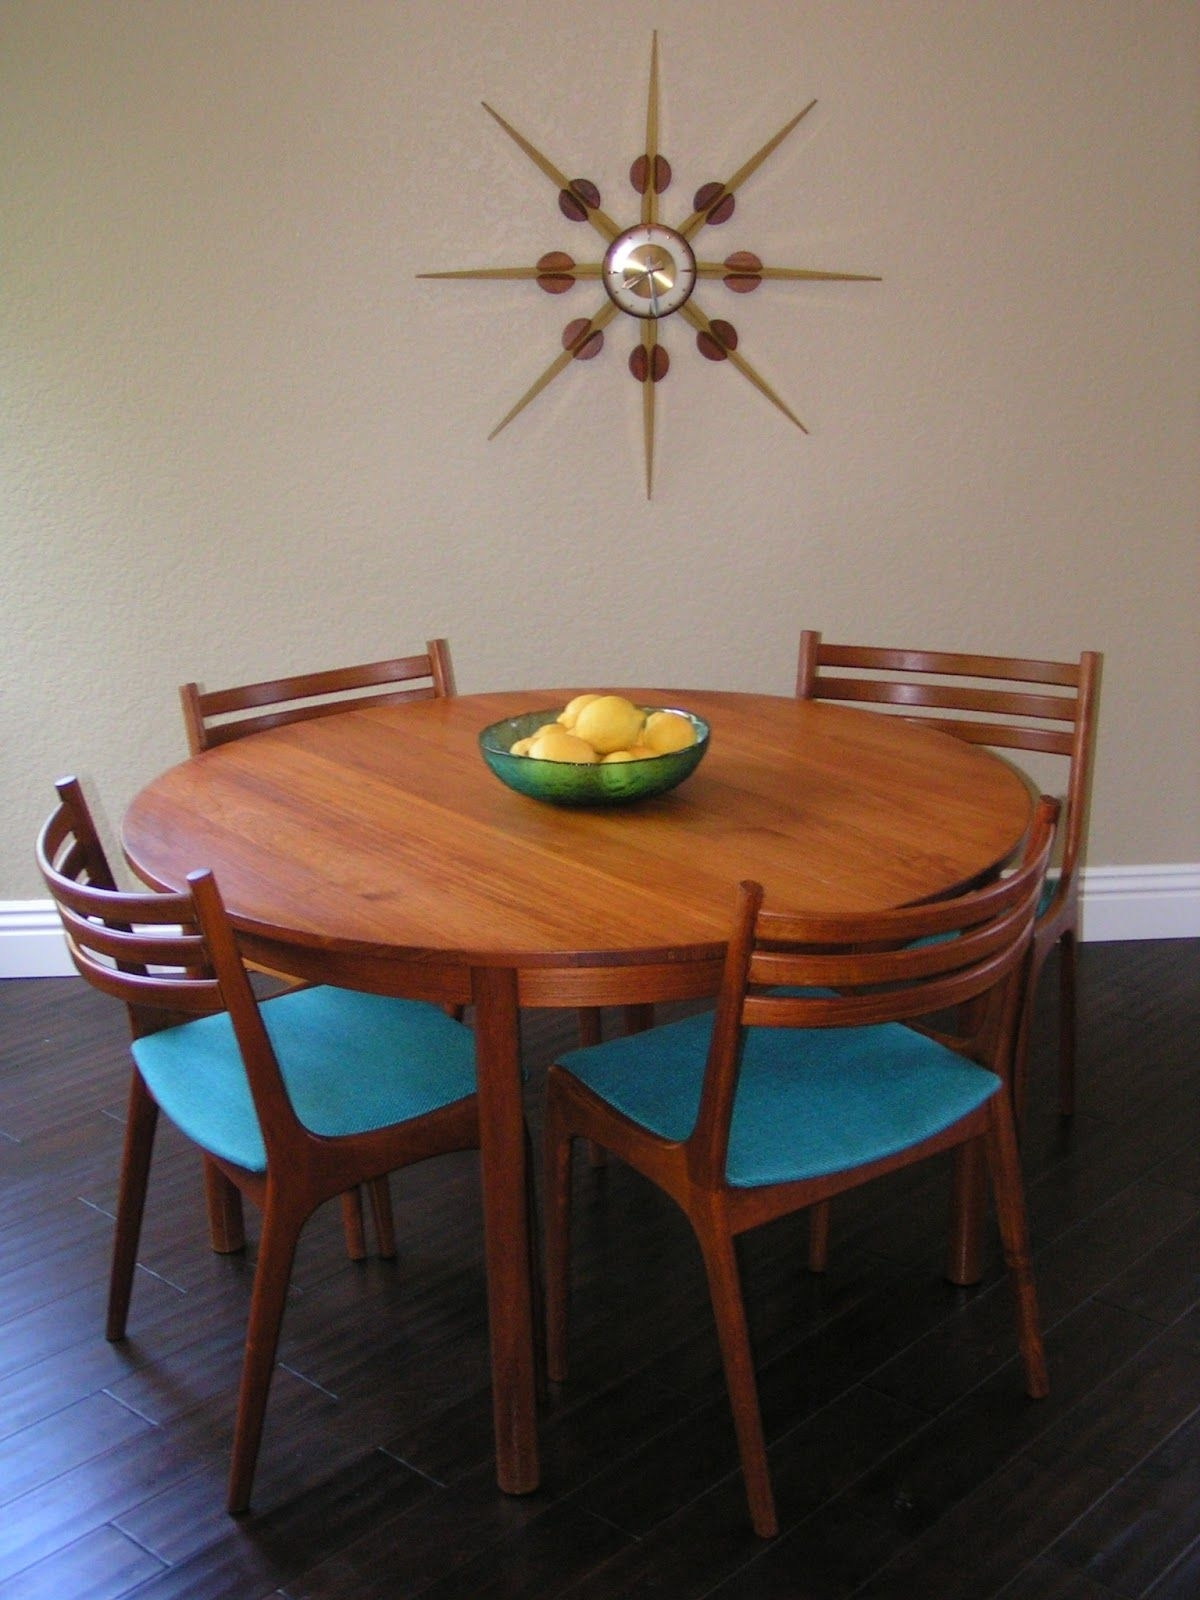 Wyatt 7 Piece Dining Sets With Celler Teal Chairs Throughout Most Recent Sleek And Simple Lines: Vintage Danish Teak Round Dining Table, Six (View 23 of 25)